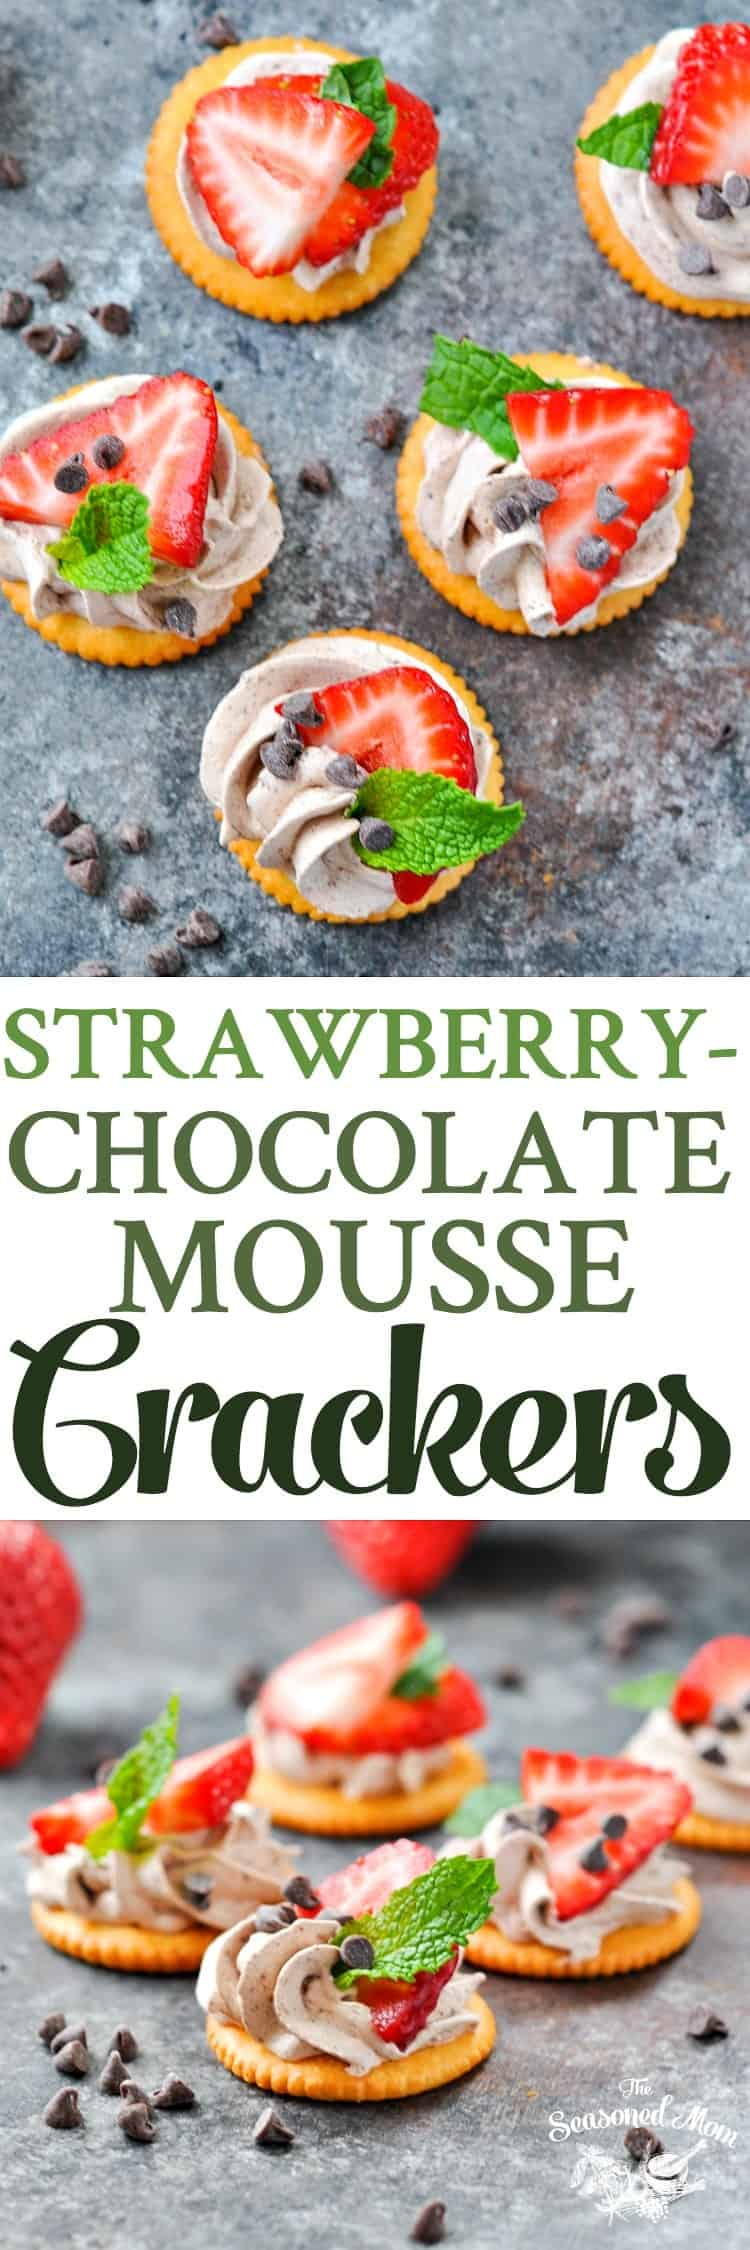 5-Ingredient Strawberry Chocolate Mousse Crackers | Chocolate Desserts | Easy Desserts | Dessert Recipes | Party Food | Party Appetizers | Snacks for Kids | Snack Ideas